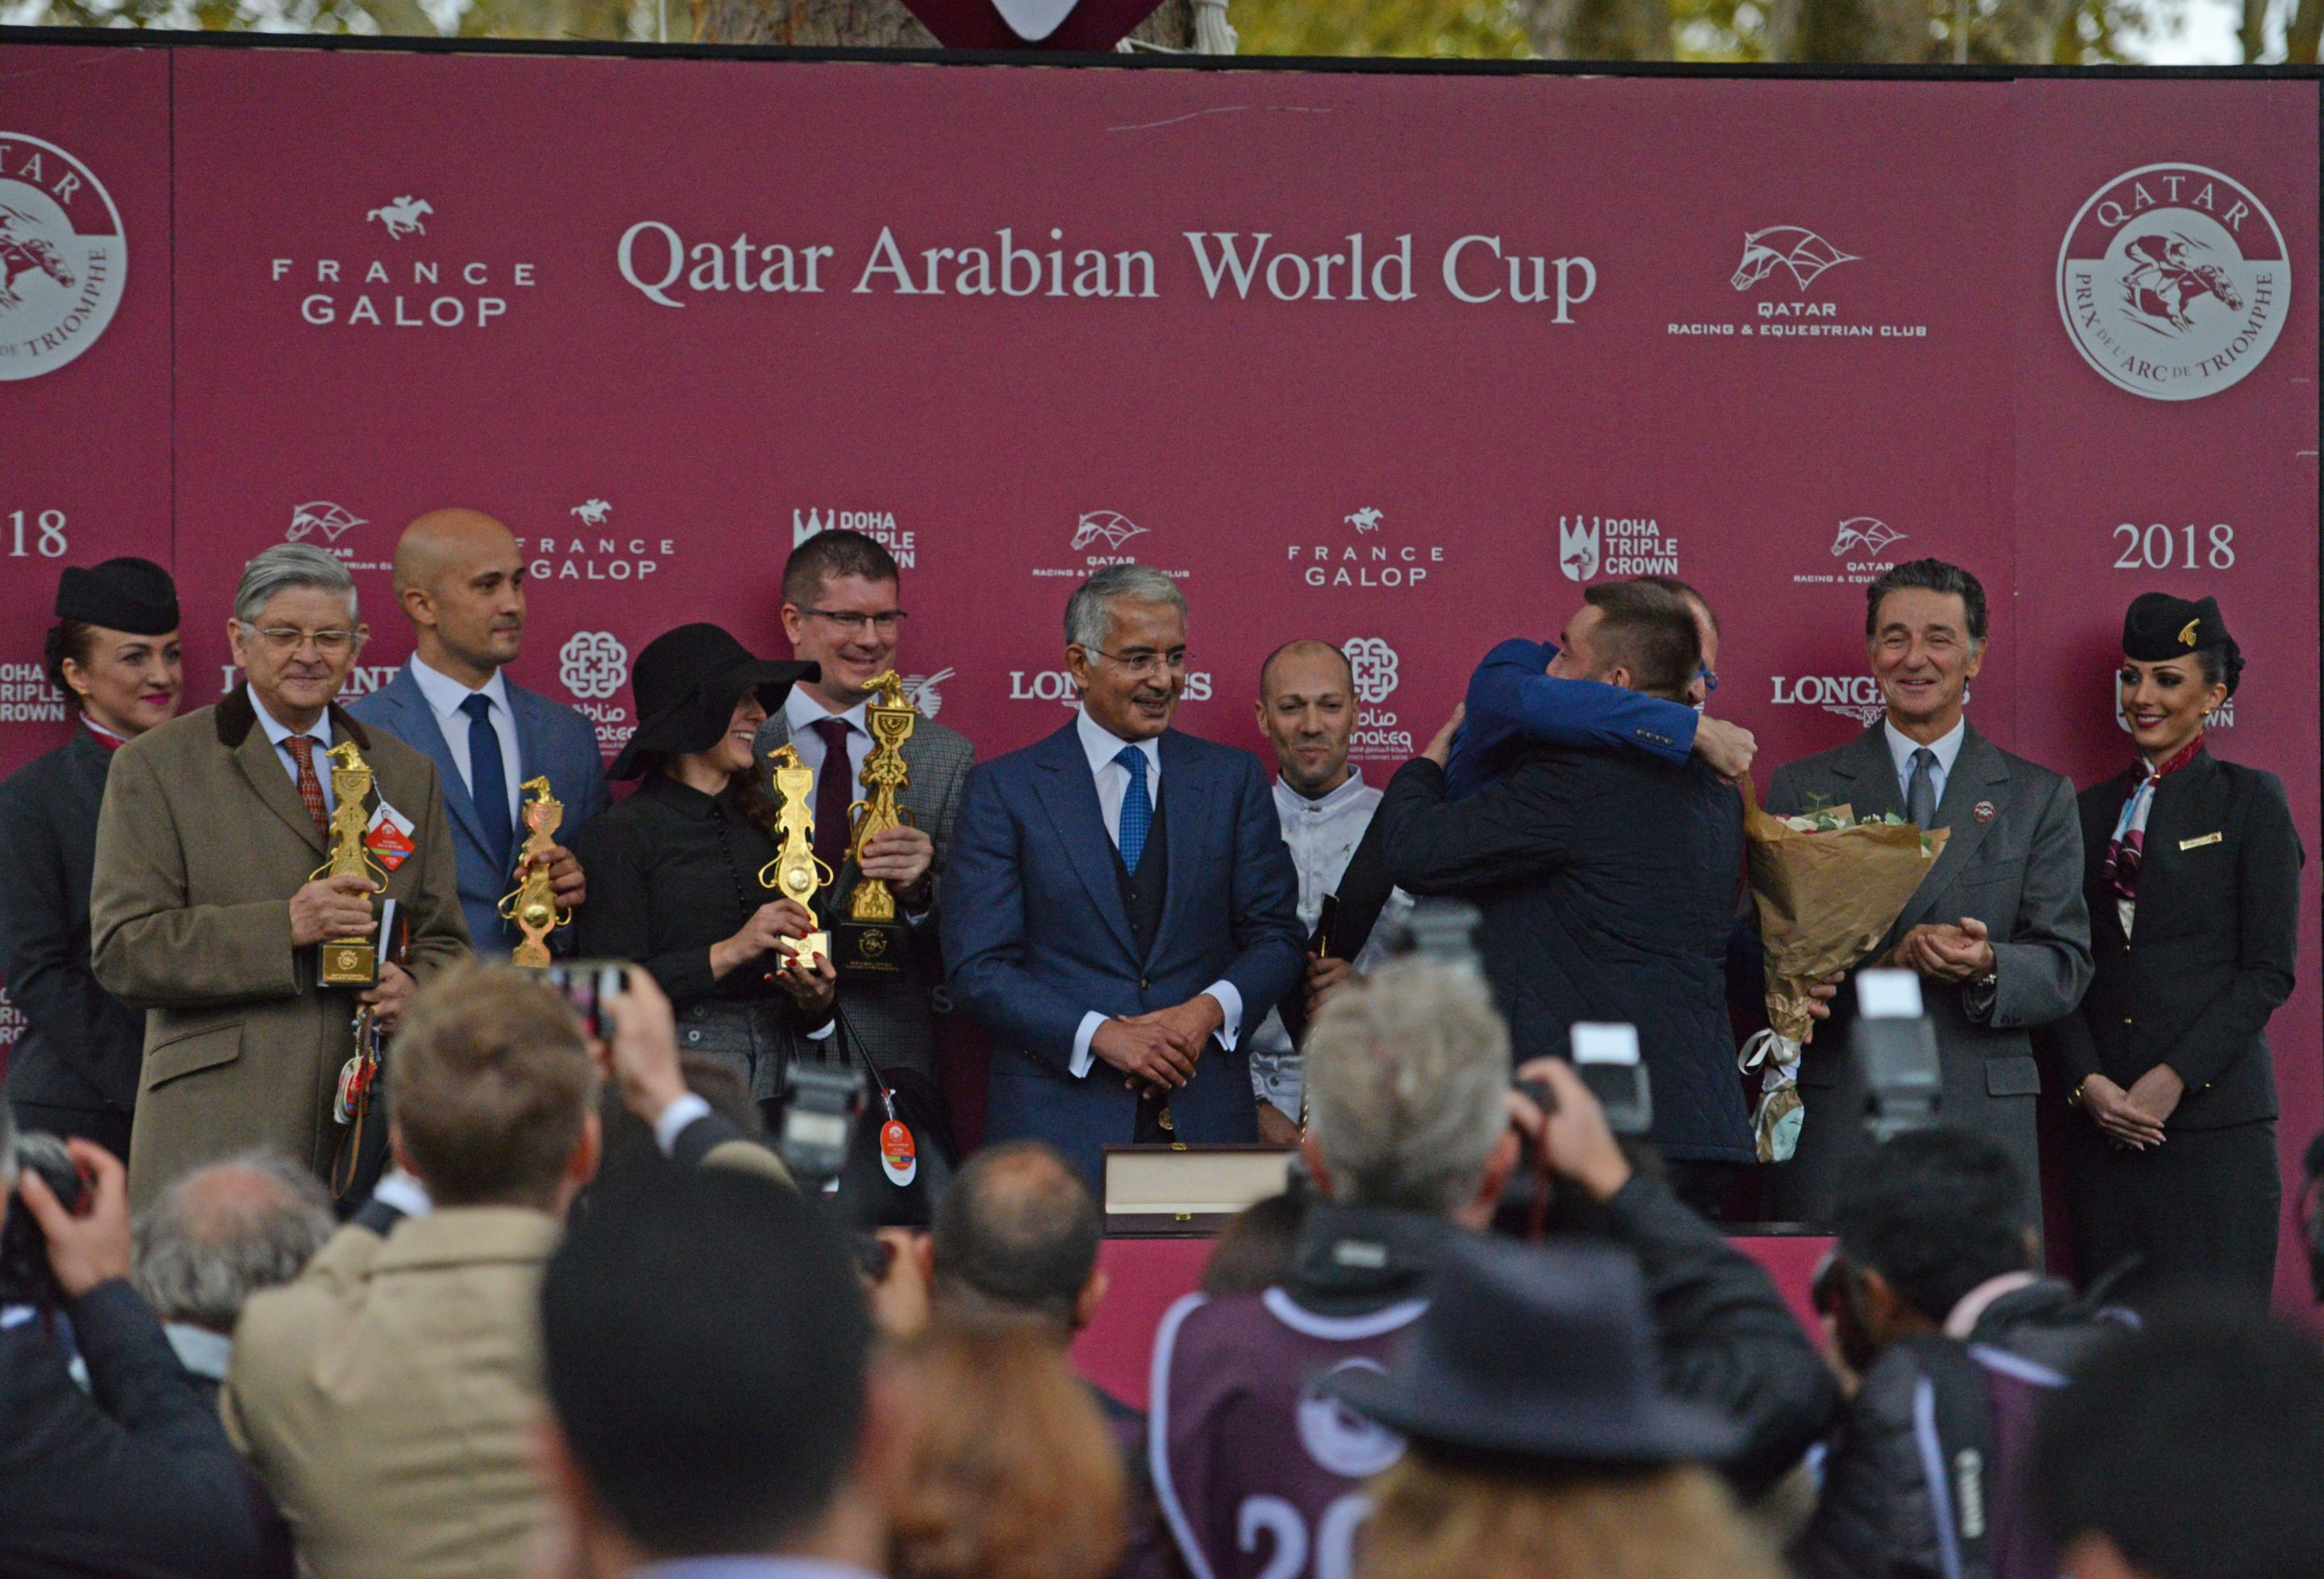 A Haras de Gouffern-bred on the top of the podium on the Qatar Prix